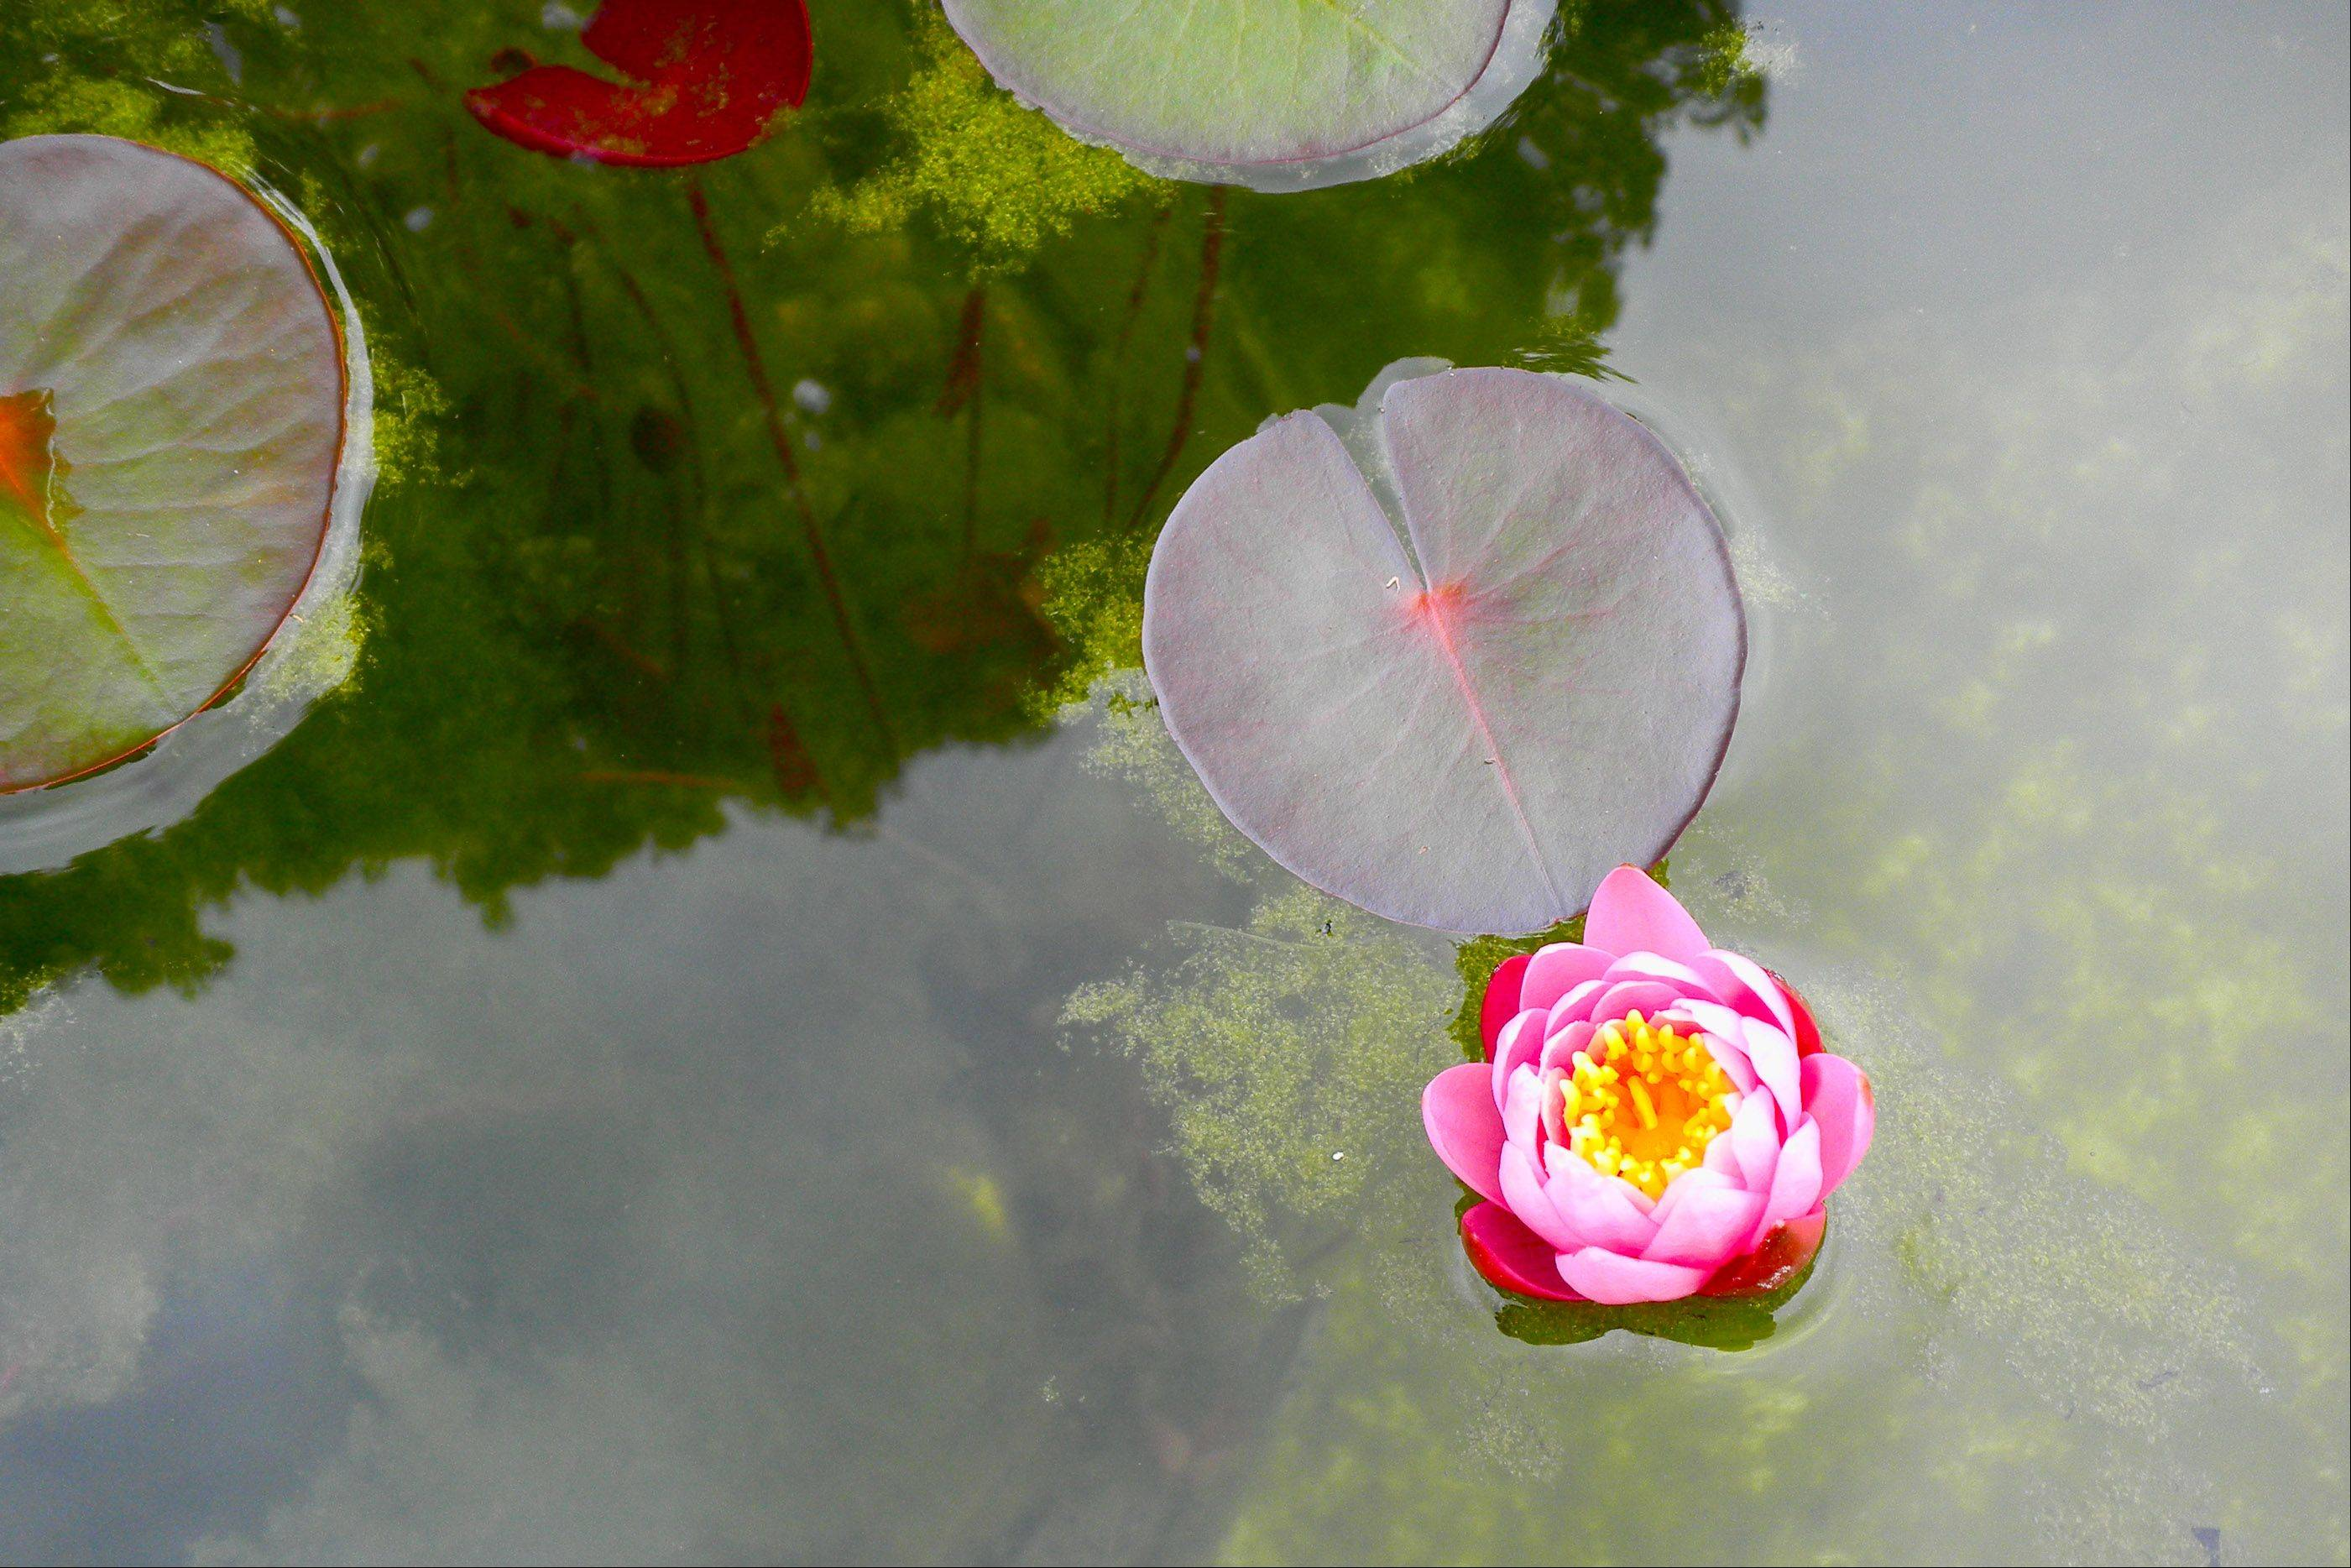 I was in Holland Michigan last week and walked by a lily pond several times a day. Each time I would take a photo with my Nikon Coolpix, but was not satisfied until a mostly cloudy day. The photo almost looks like an impressionistic painting. I love the slight reflection of the clouds.